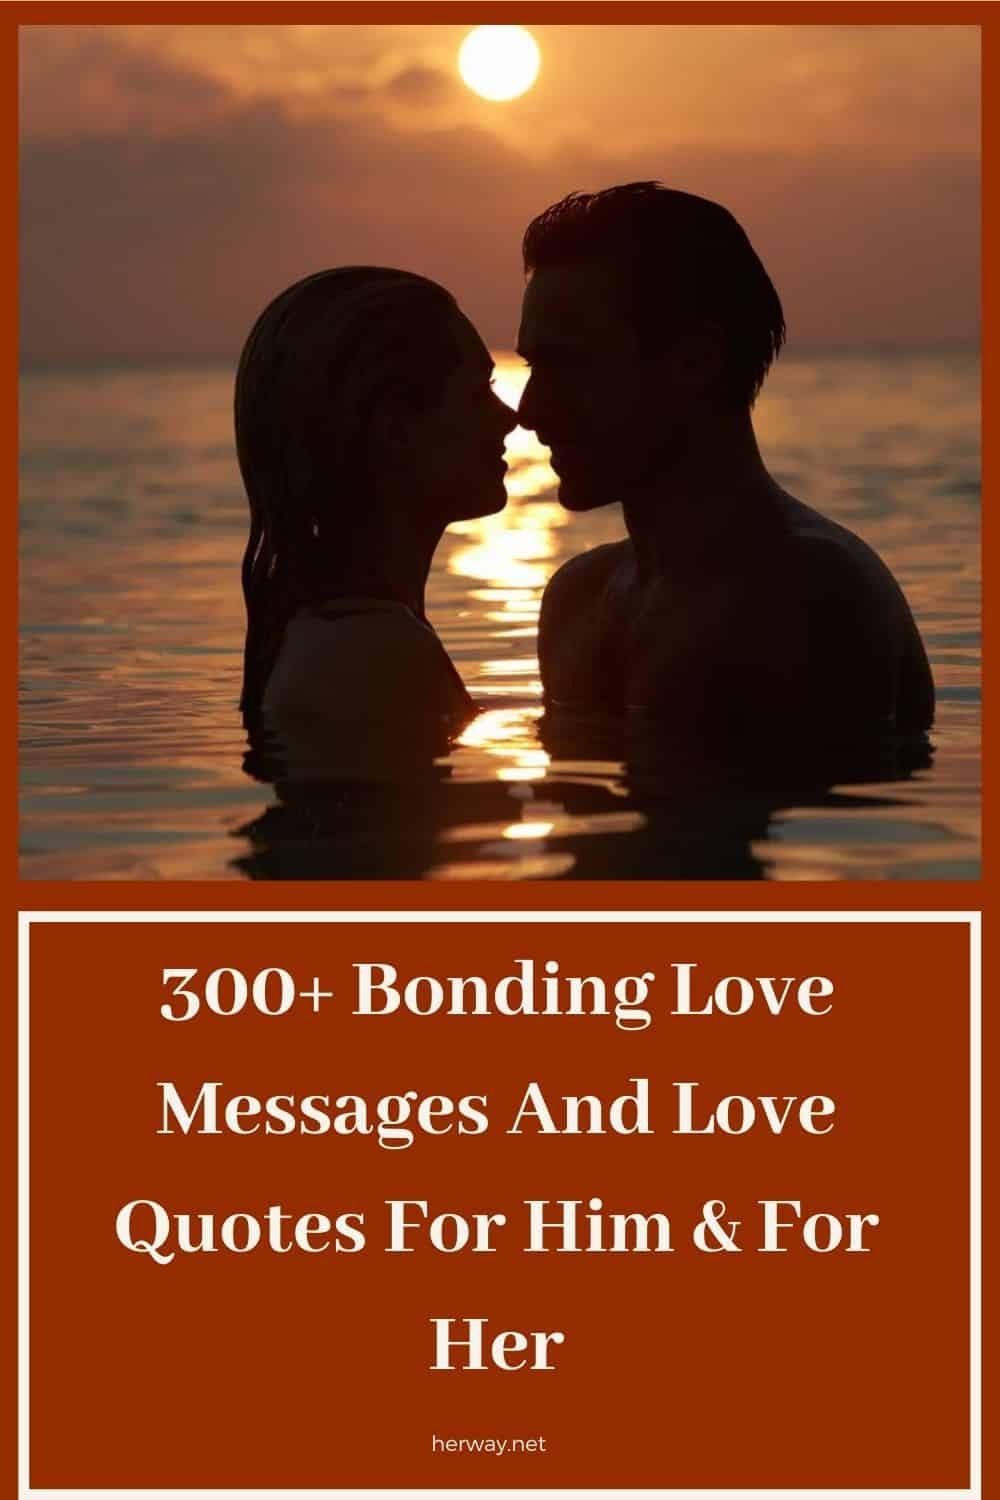 300+ Bonding Love Messages And Love Quotes For Him & For Her